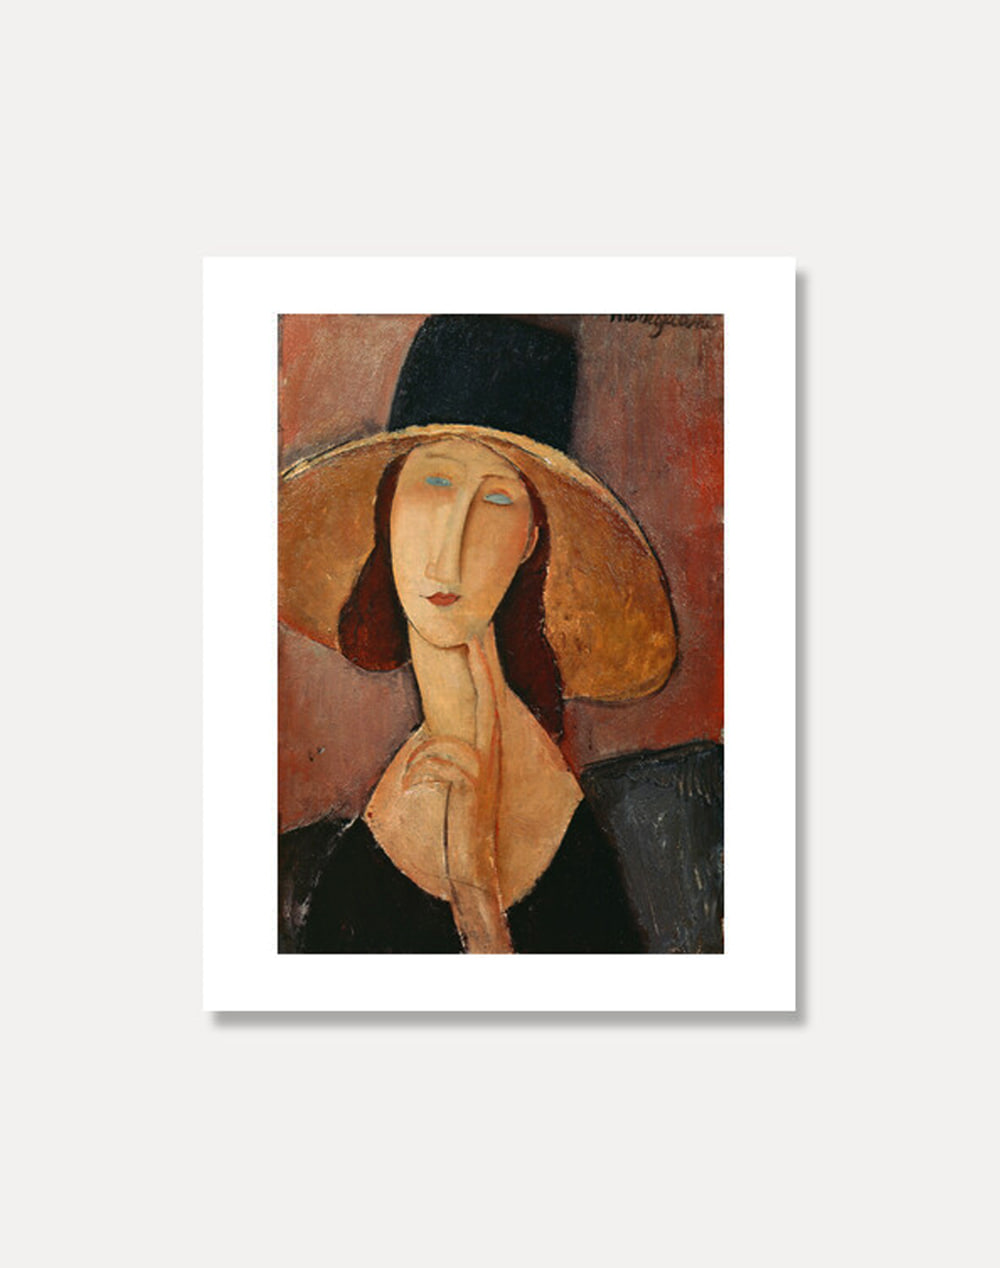 [아메데오 모딜라니]AMEDEO MODIGLIANI ― Portrait of Jeanne Hebuterne in a large hat 20 x 25 cm